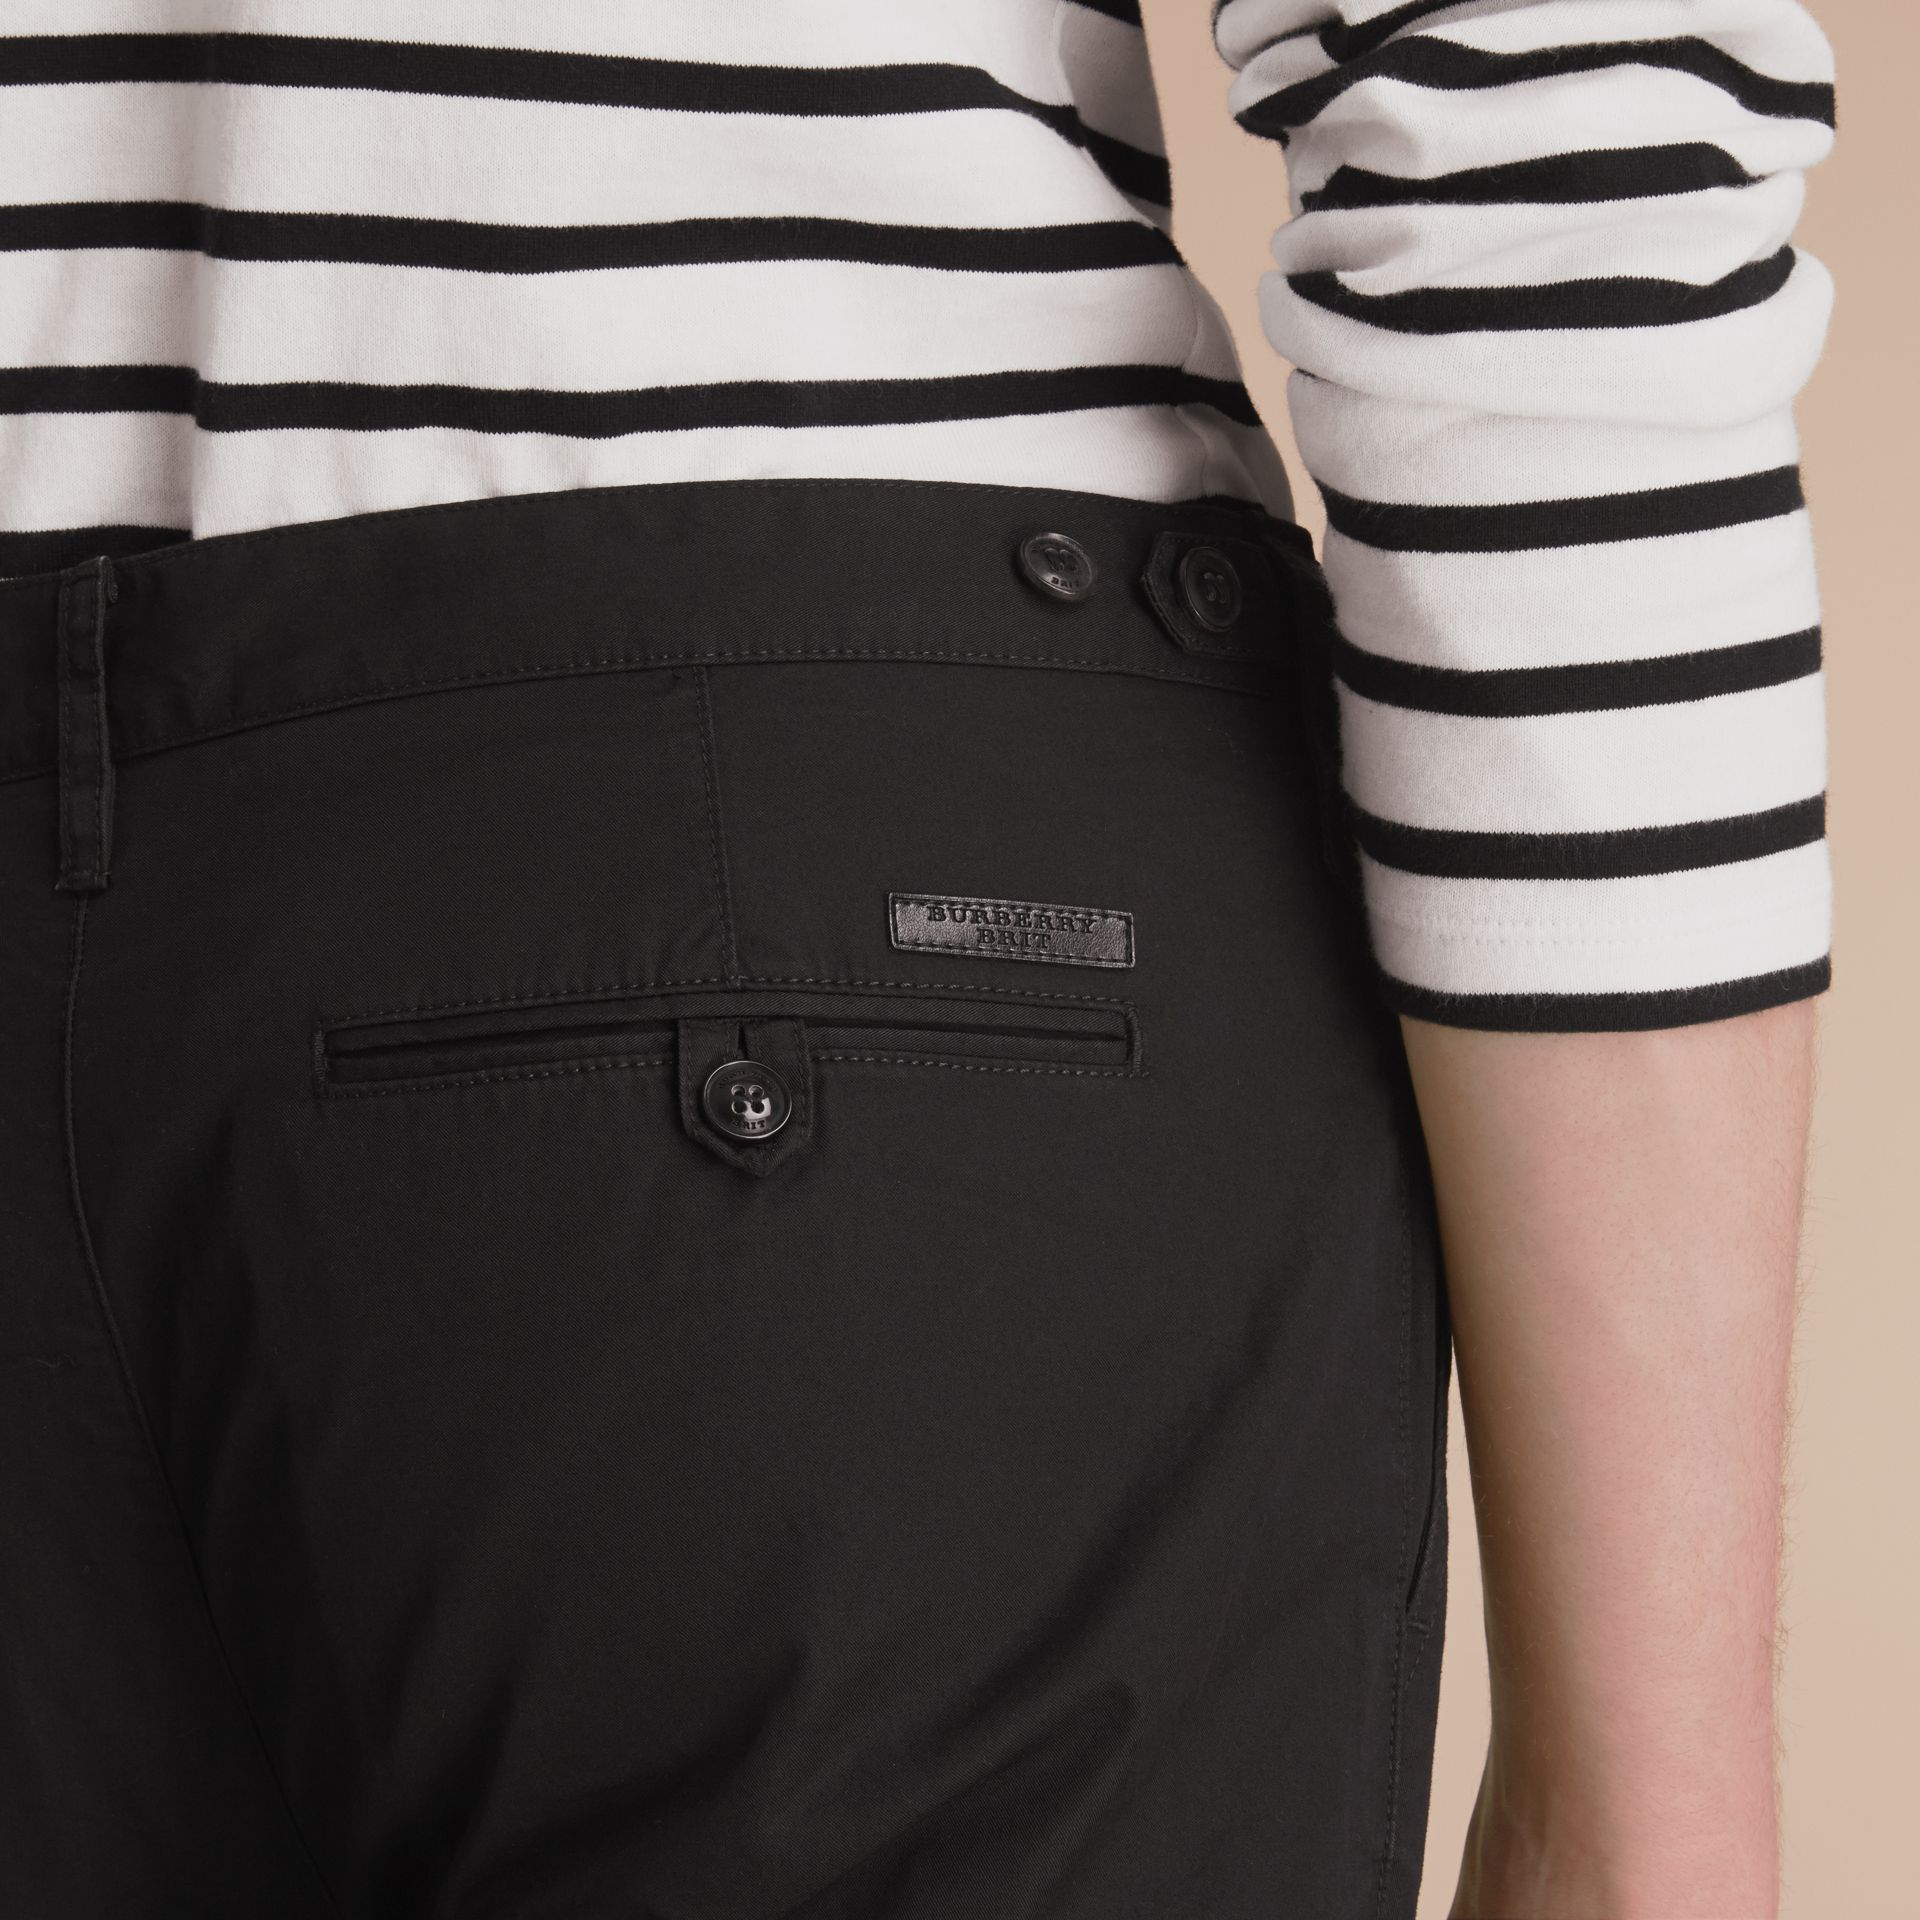 Pantalon chino de coupe droite en coton (Noir) - Homme | Burberry - photo de la galerie 5